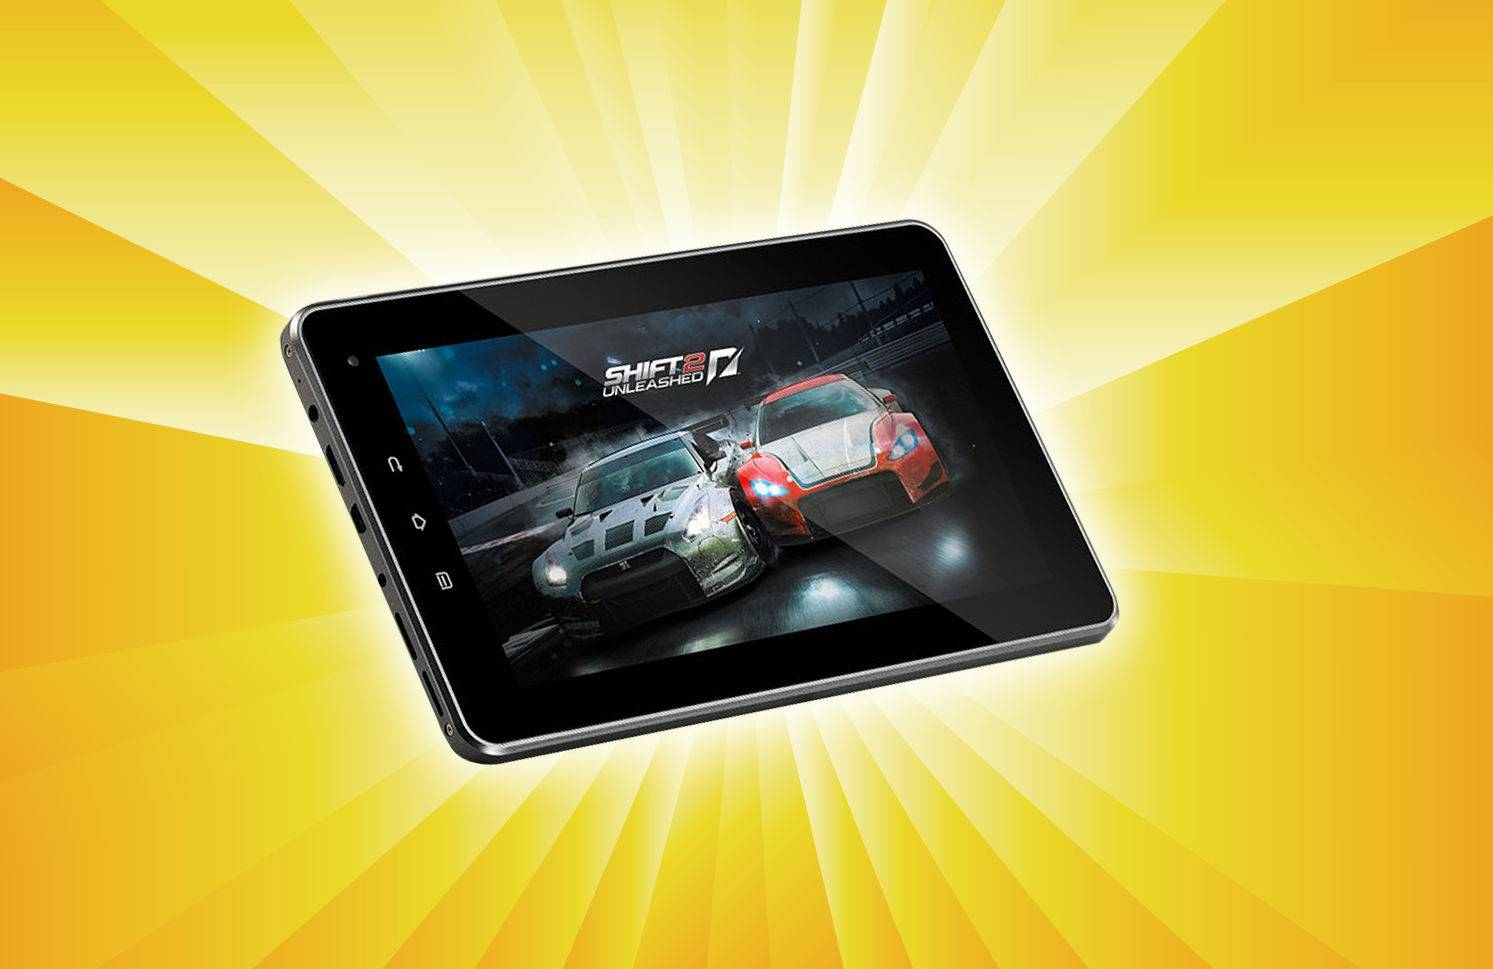 10.2 TFT Display Tablet PC with 1024 600 resolution